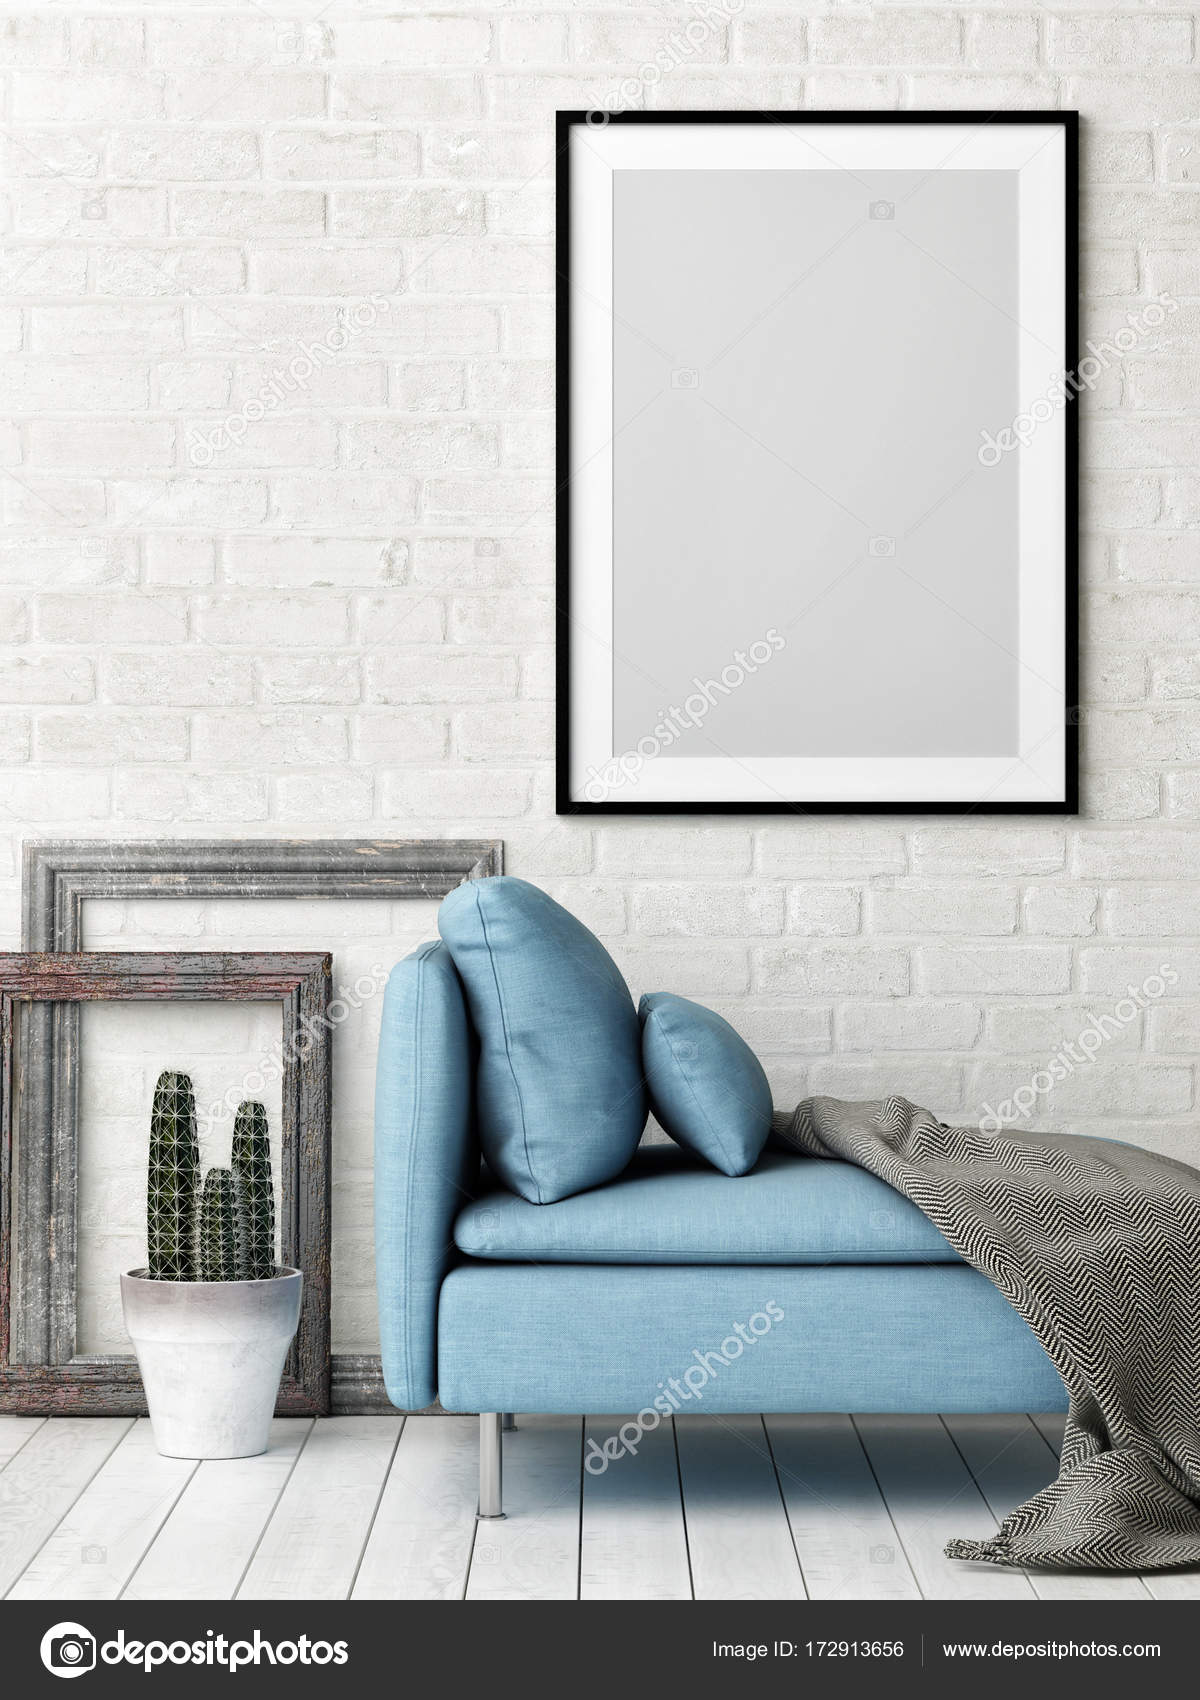 Hipster Living Room Concept With Mock Up Poster, White Brick Wall And Blue  Sofa,